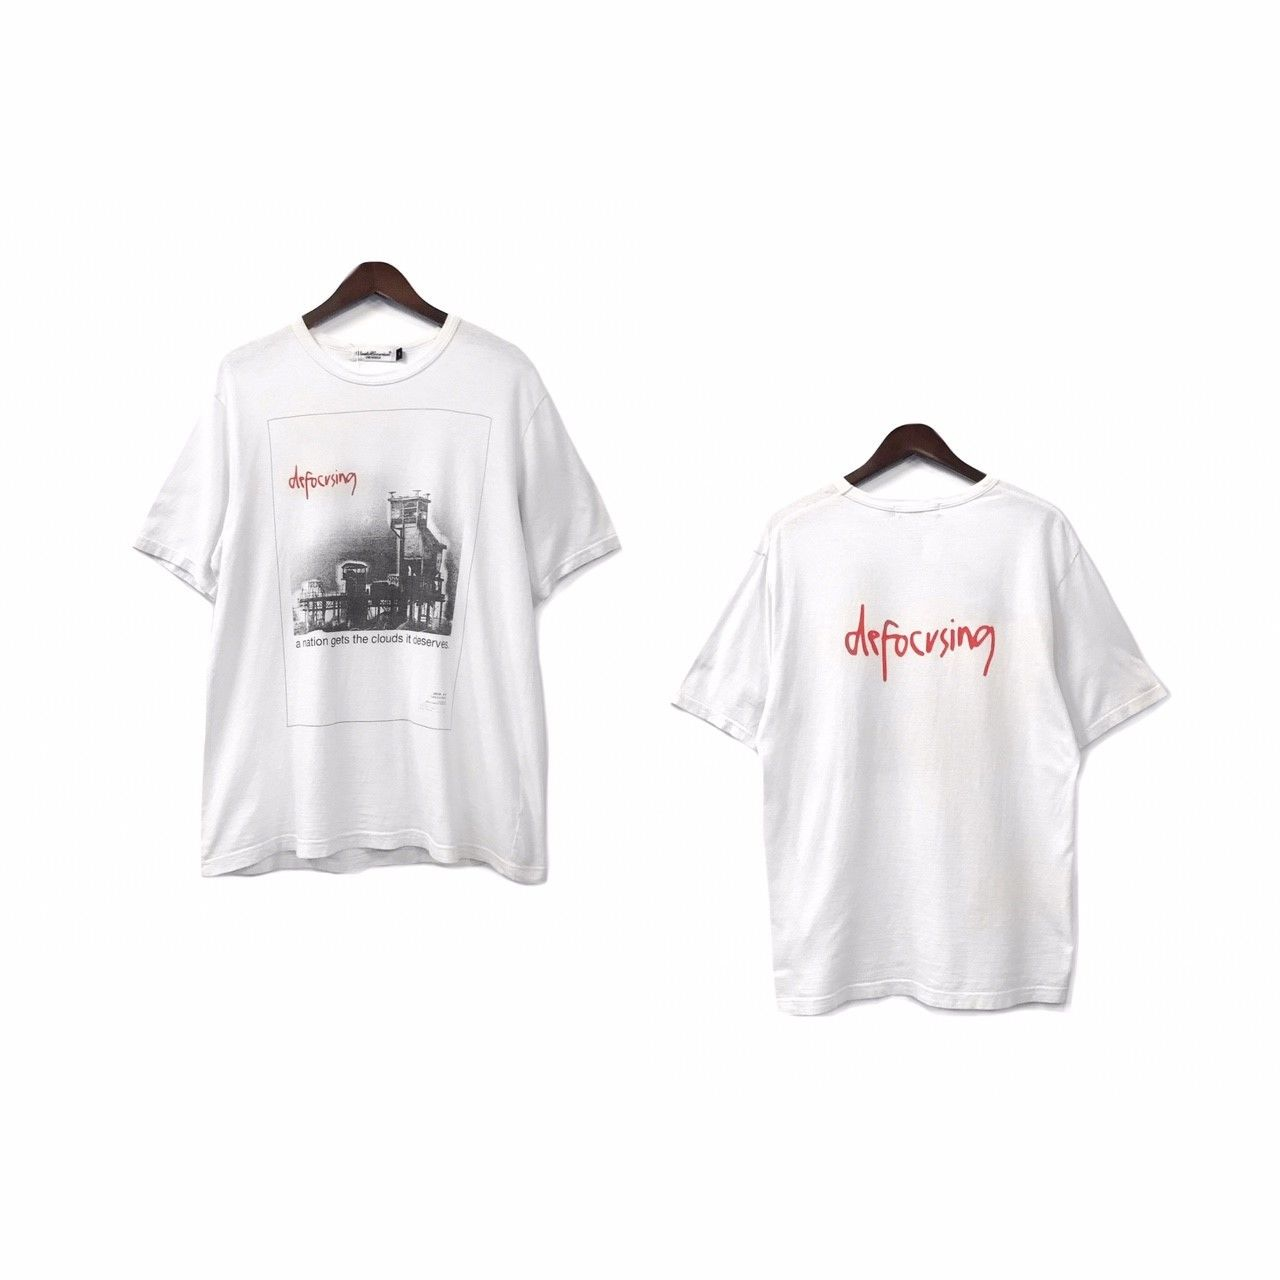 """"""" UNDERCOVERISM """" Print Tee (size - 3) ?7000+tax【着画あり】"""